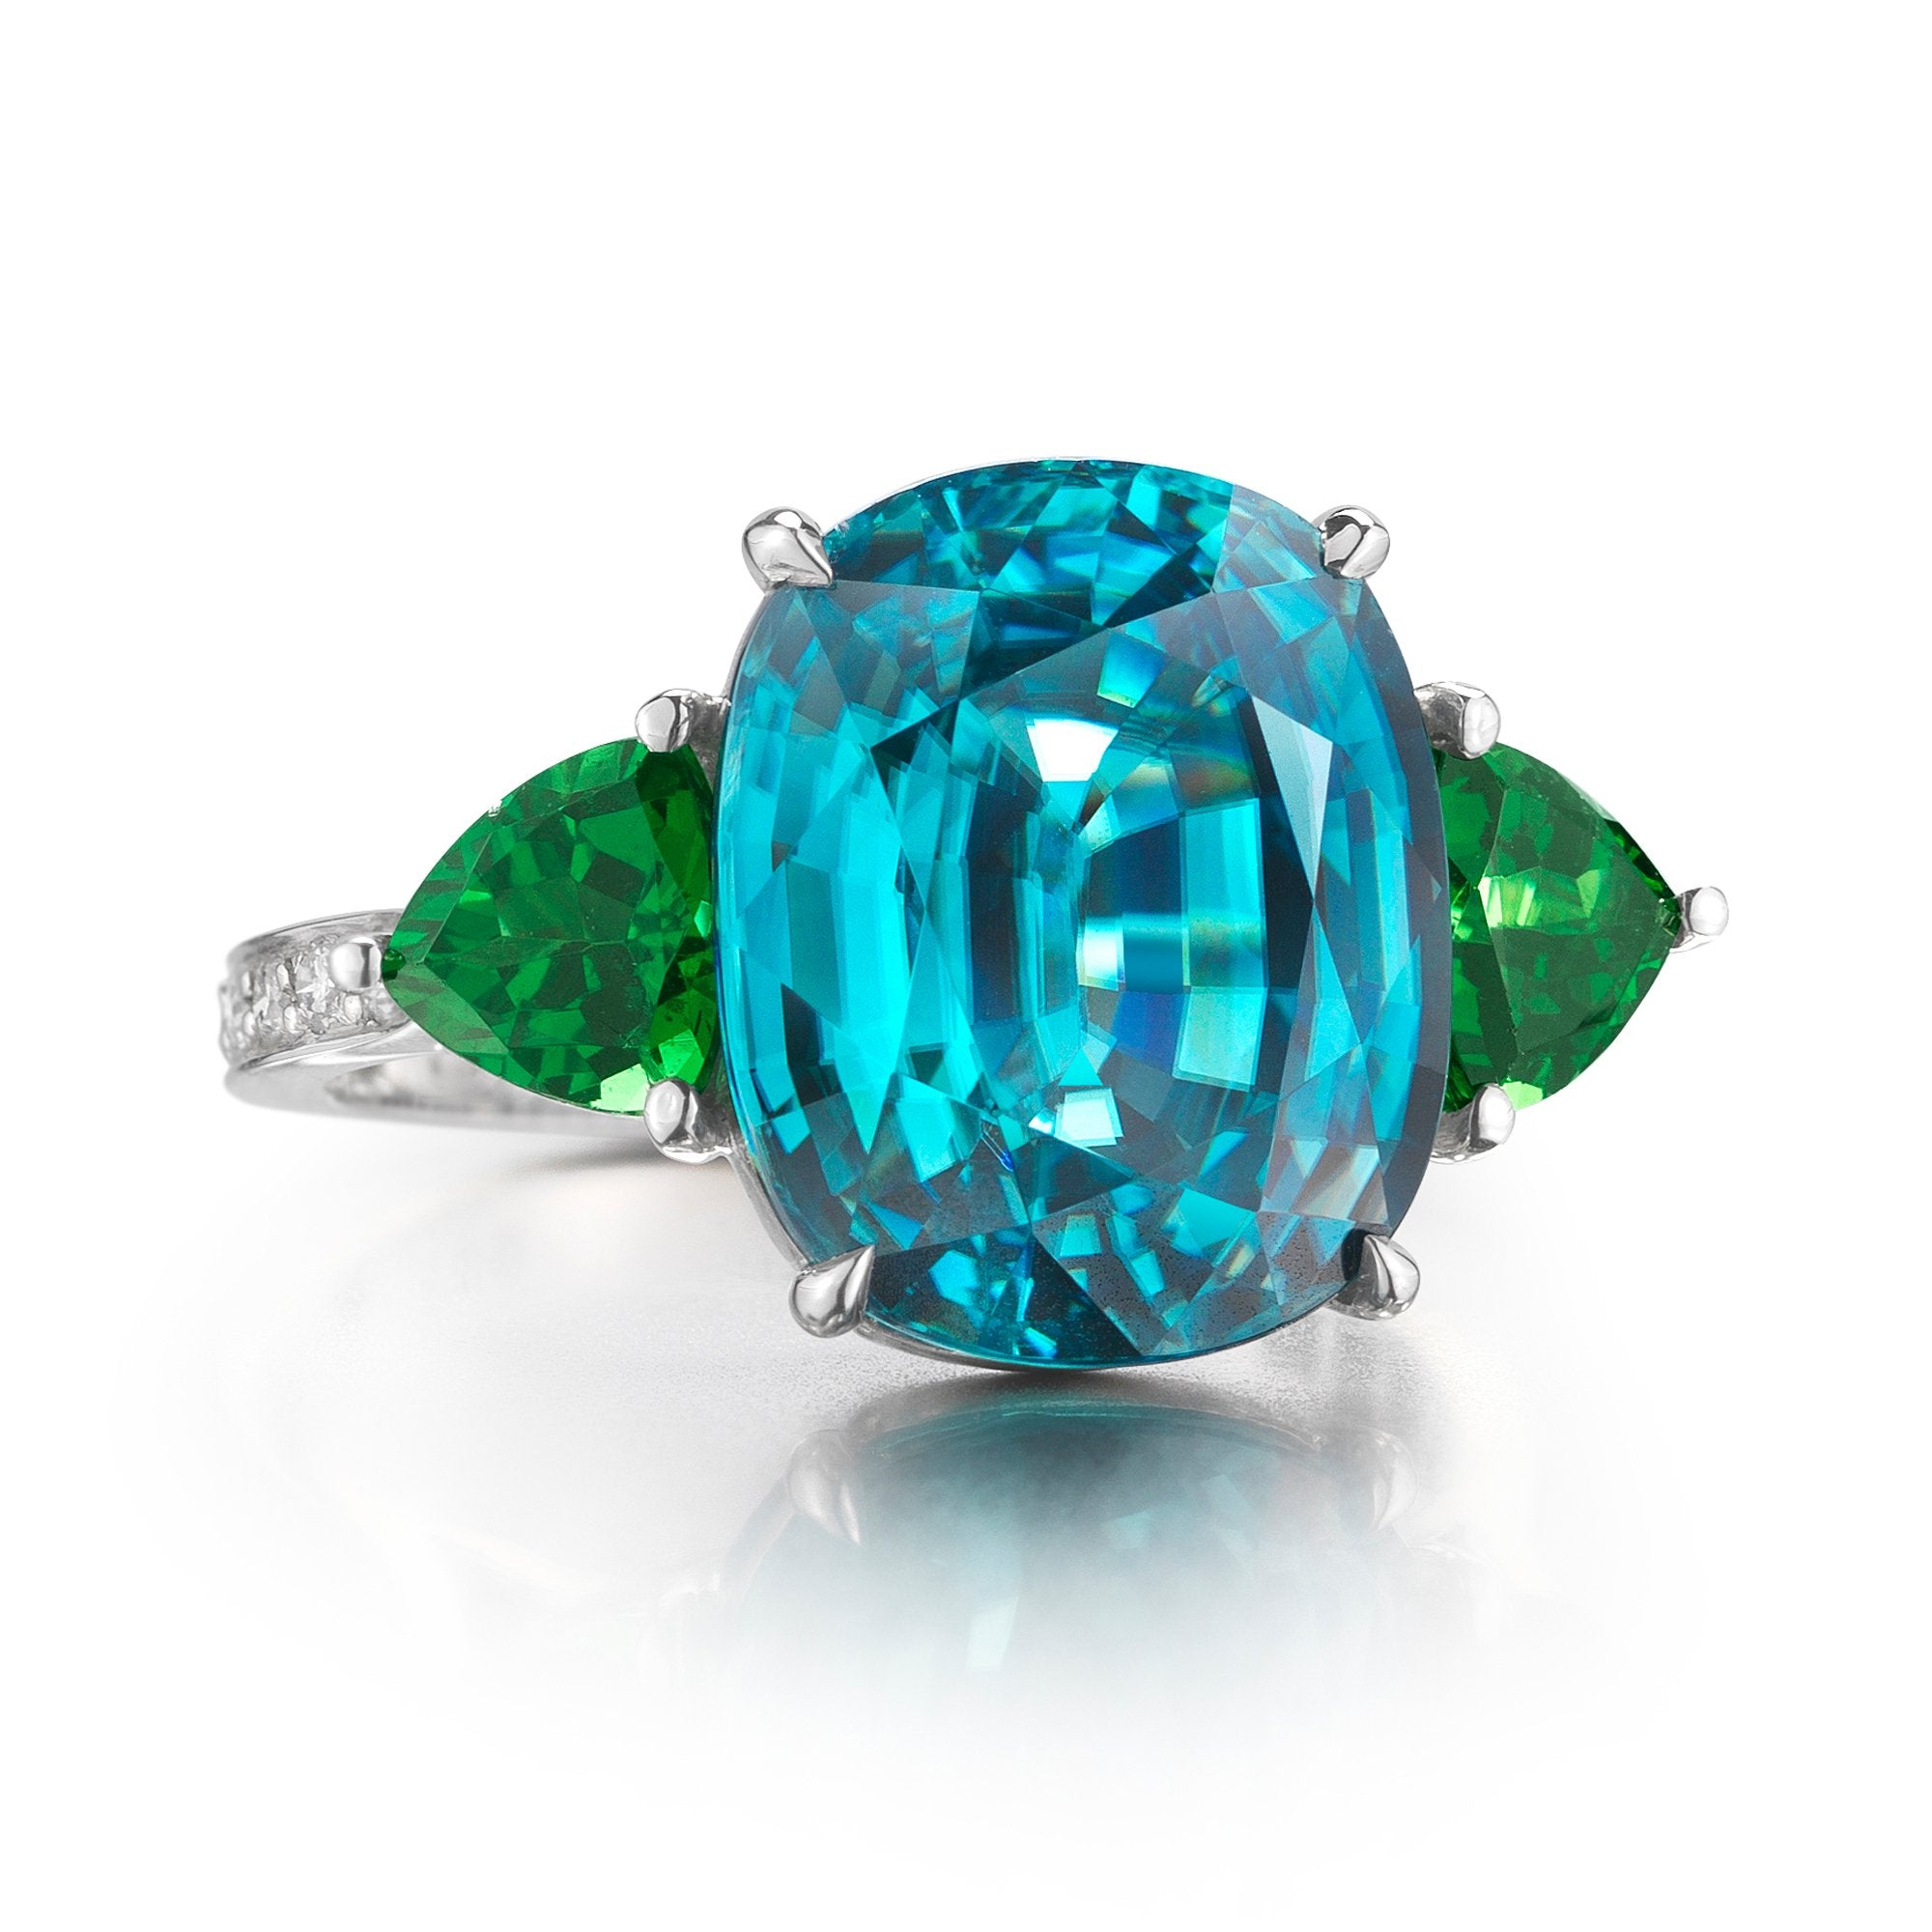 products ana greentourmaline cavalheiro acfj engagement tourmaline green ring with diamonds rings